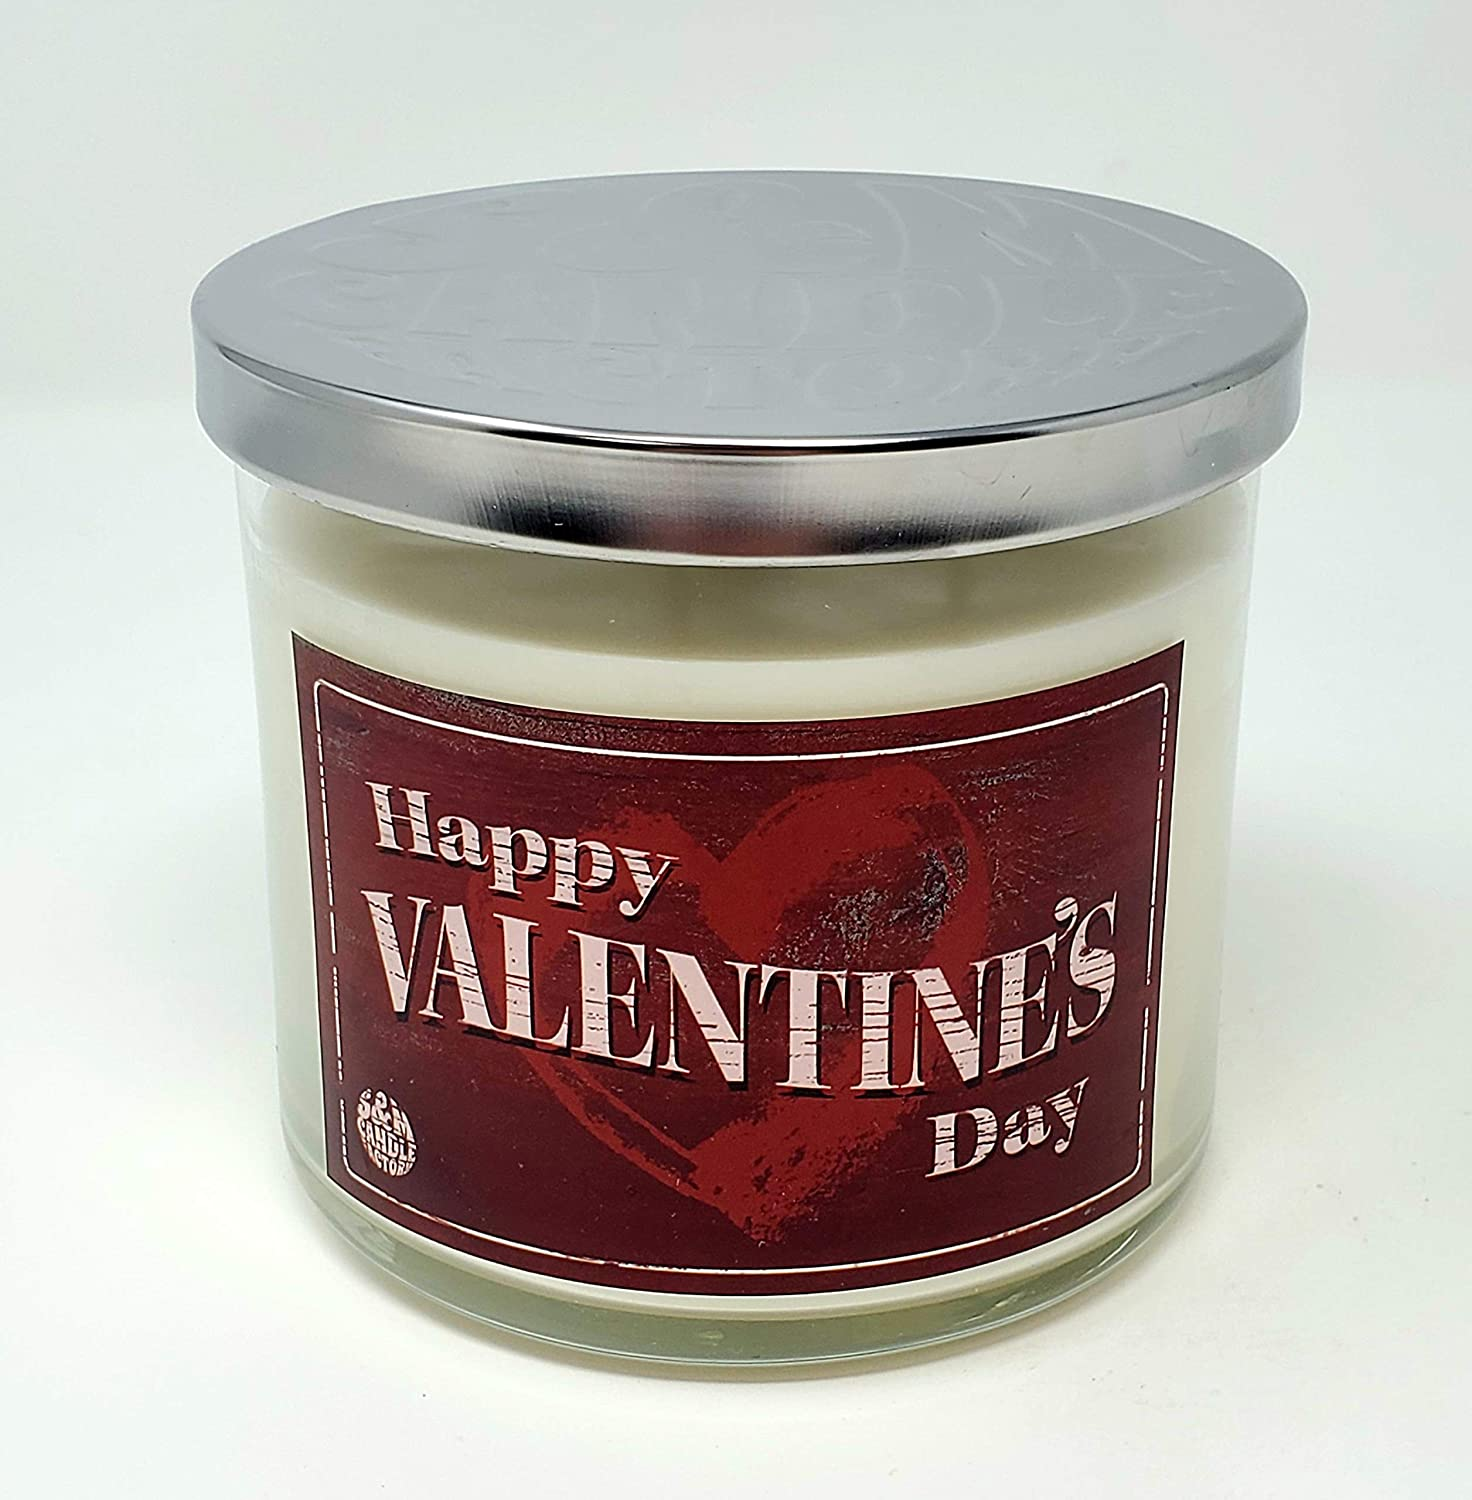 Happy Valentine's Day Candle ~ Winter Candy Apple Scented 3 Wick Jar Candle ~ Rustic Vintage Candle